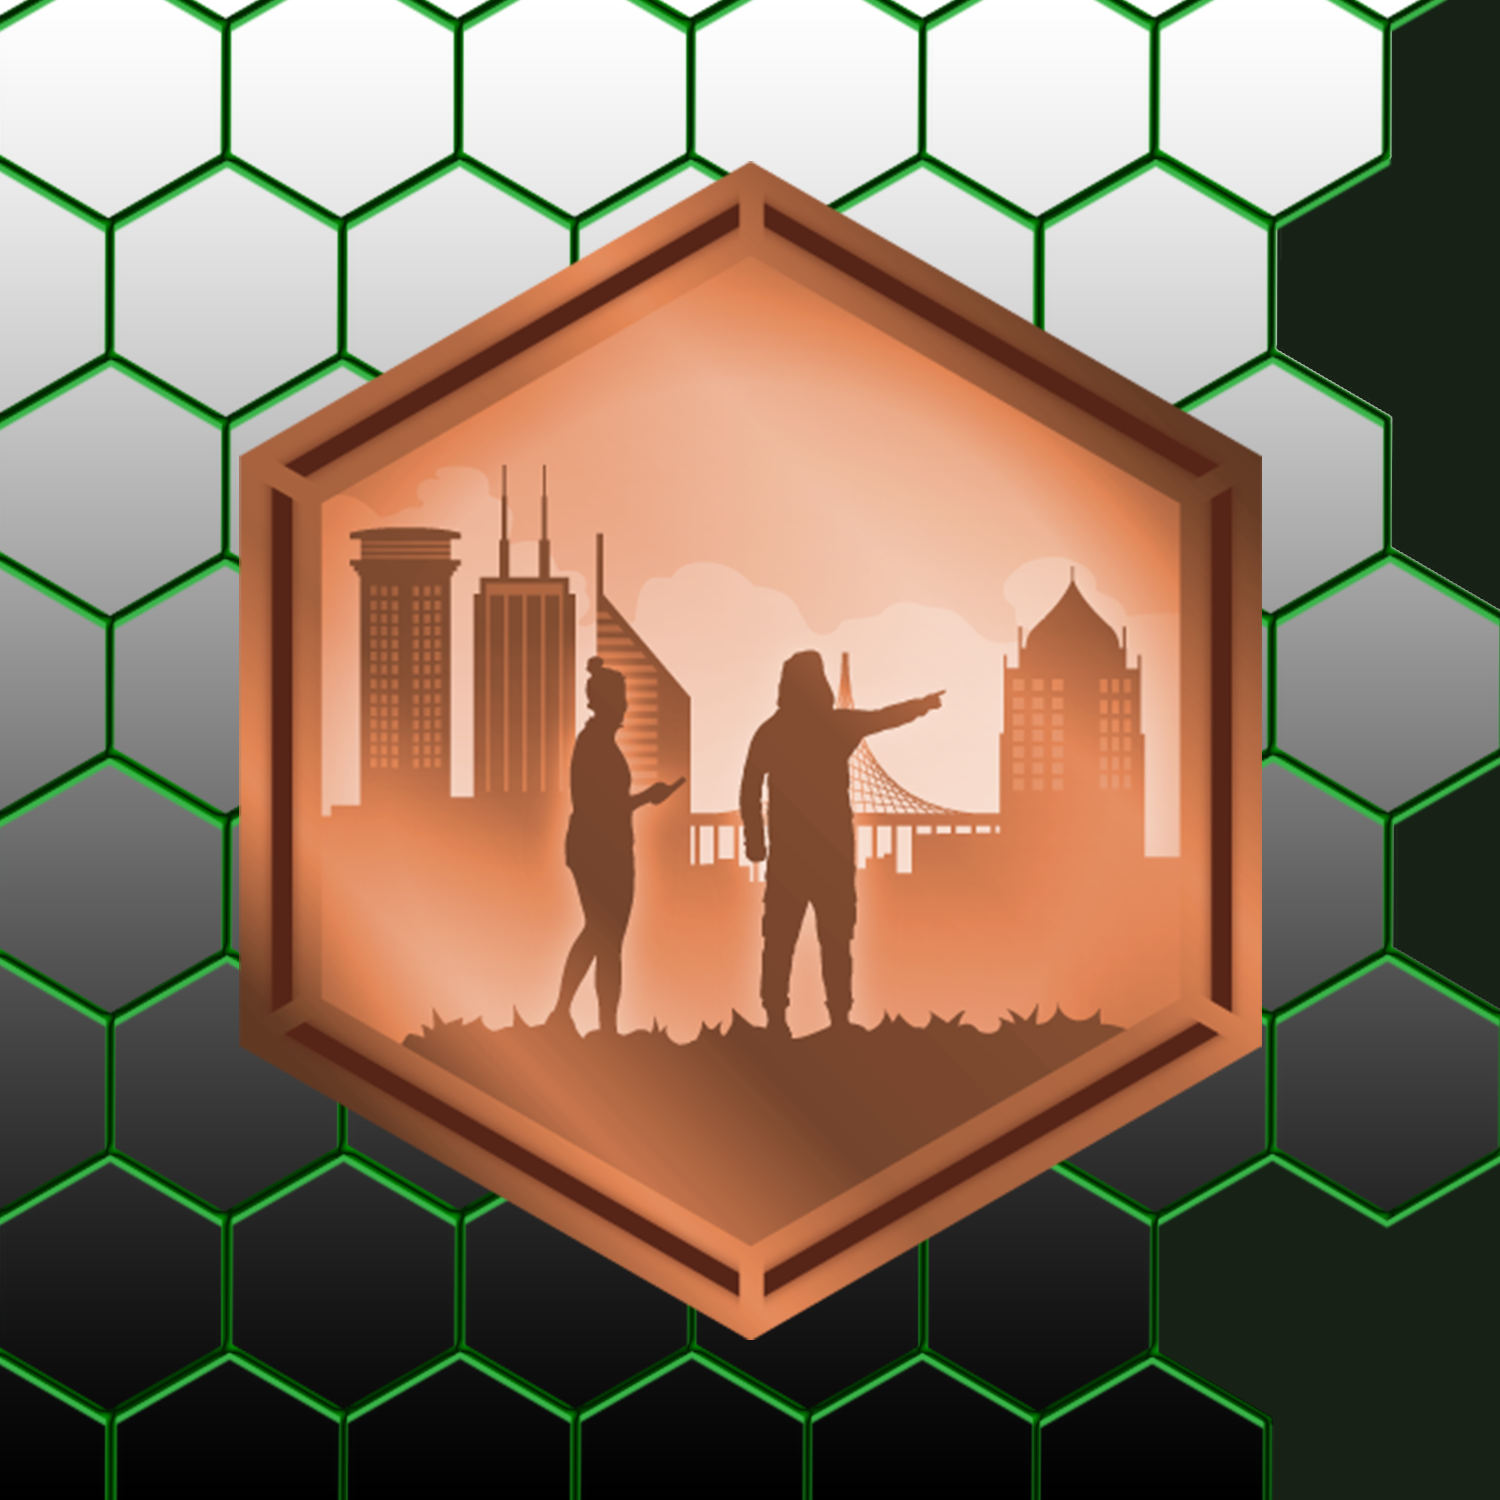 Mission Day - Discover Chicago together with friends of both factions as you complete a series of missions designed to highlight the most captivating and significant parts of the city.